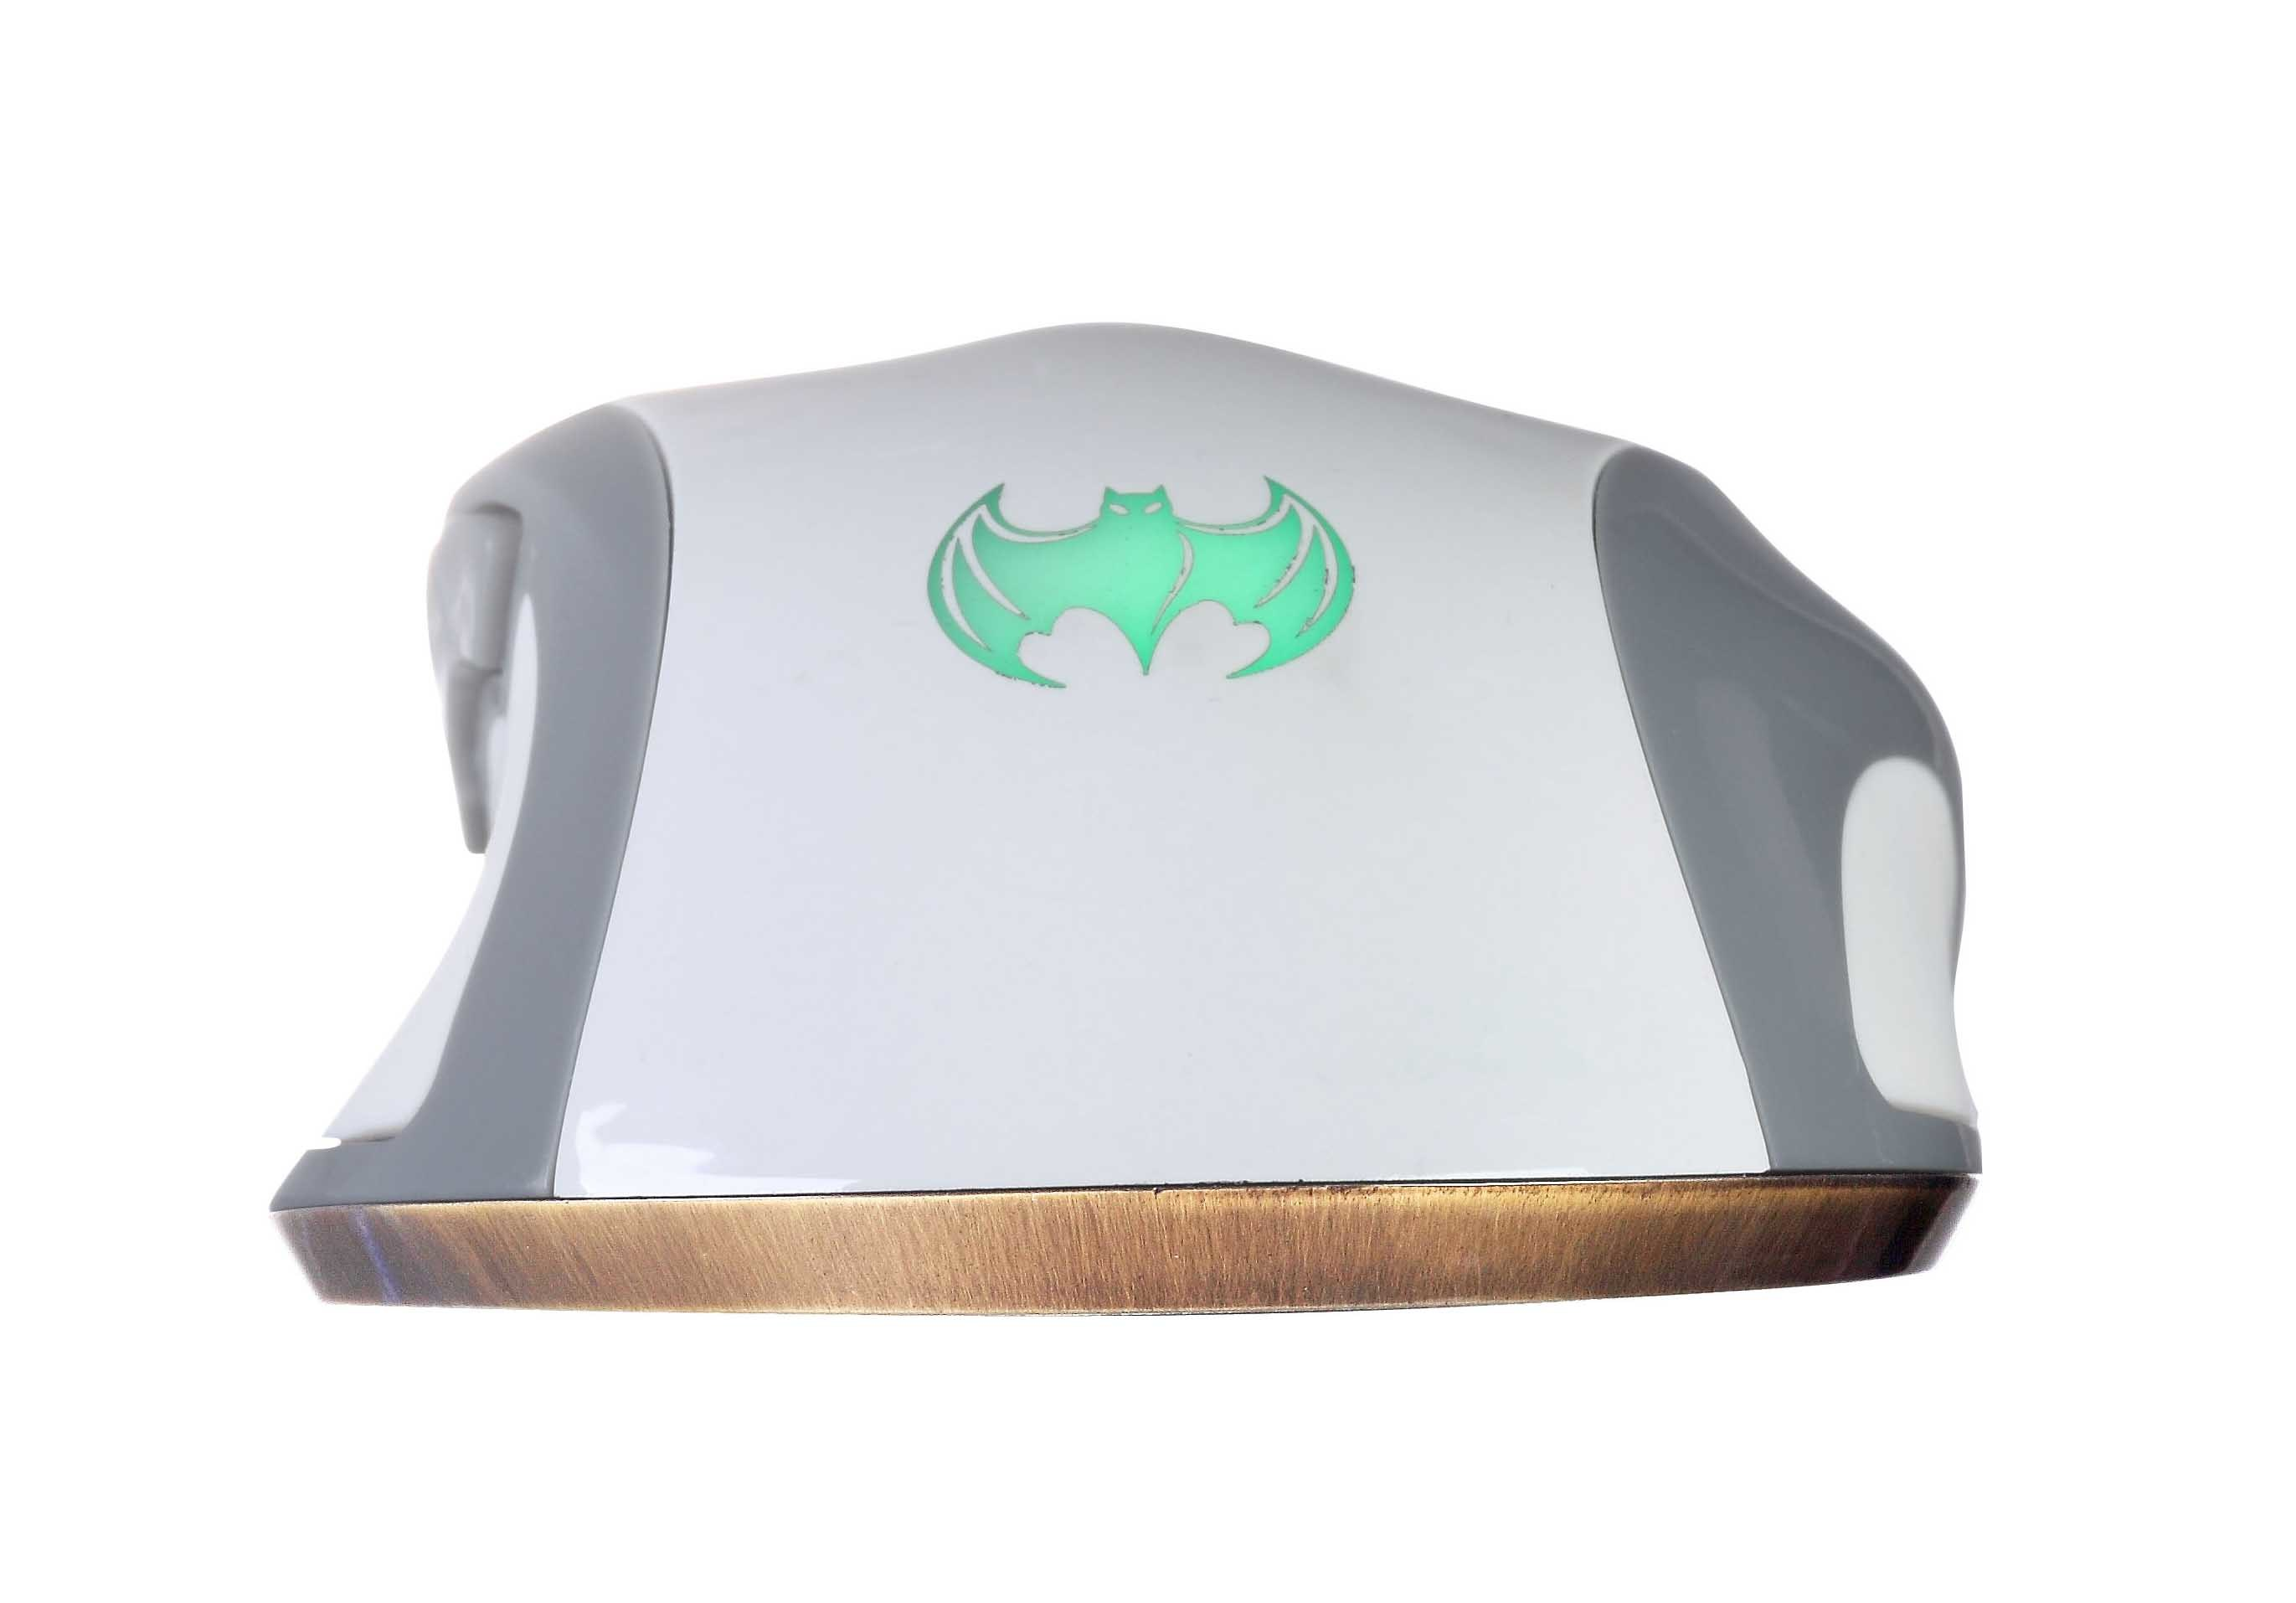 8d Gaming Mouse, Keys Editable